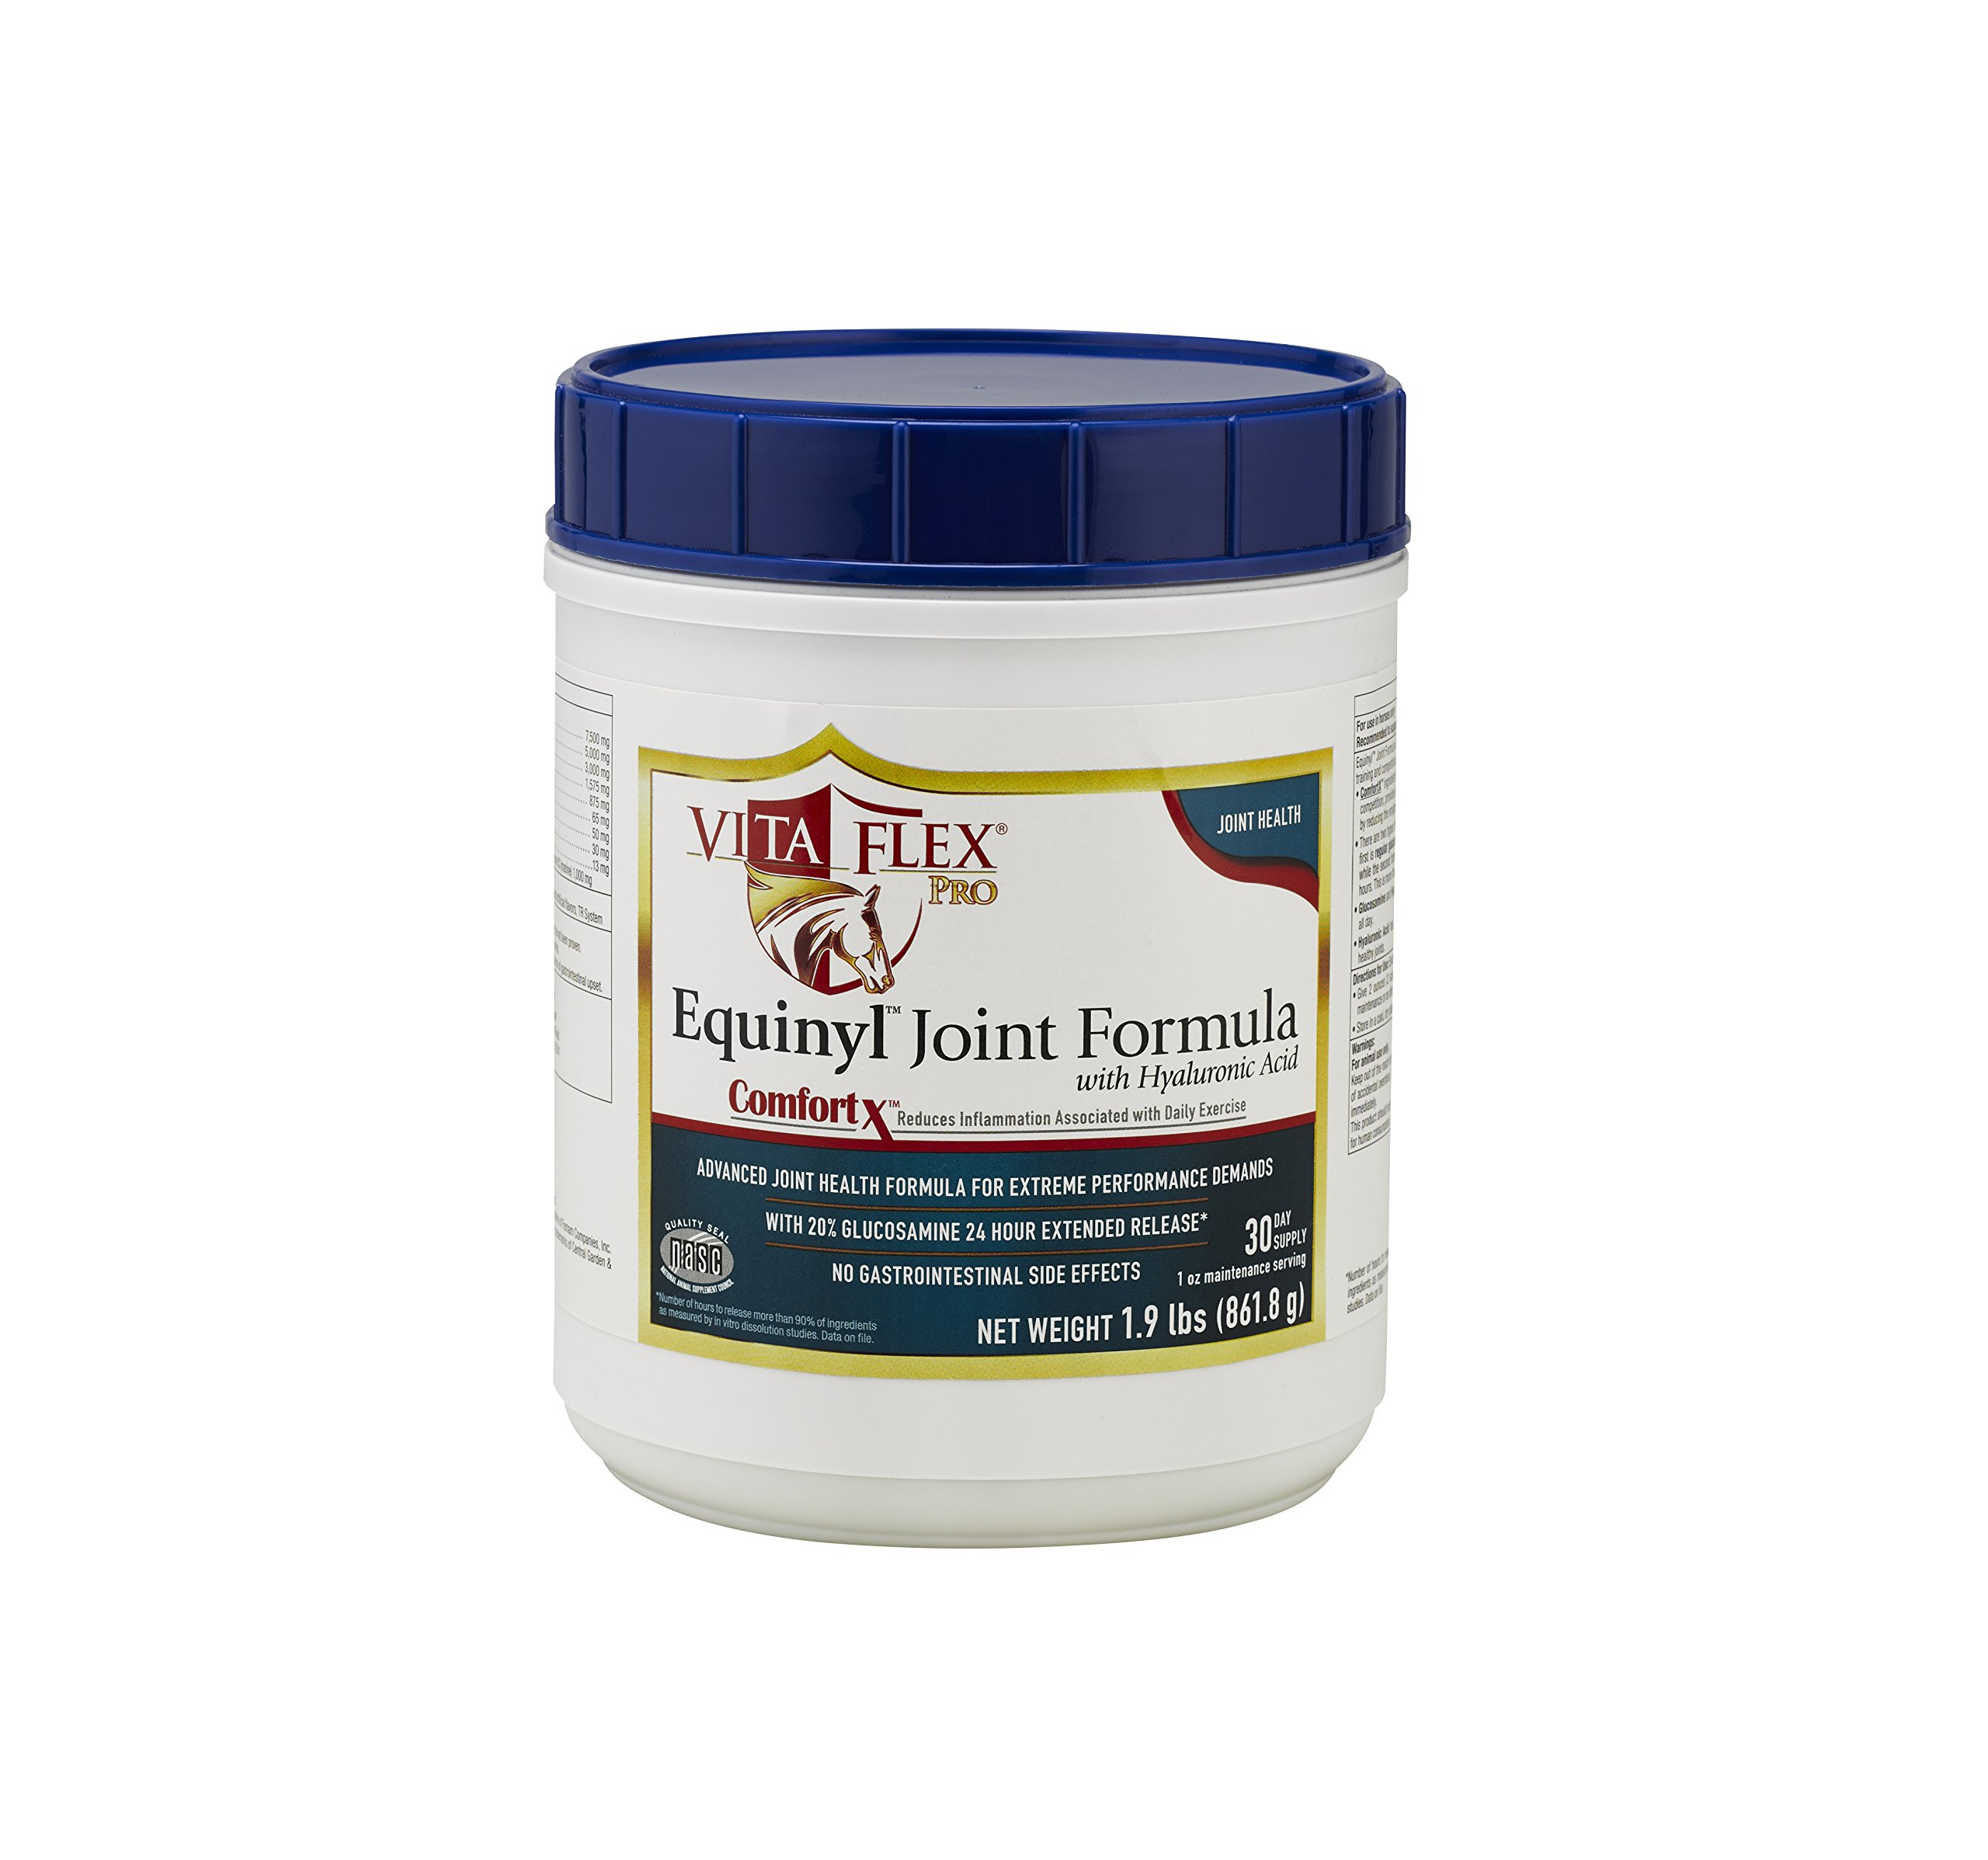 Vita Flex Pro Equinyl Joint Formula with Hyaluronic Acid, 60 Day Supply, 1.9 lb